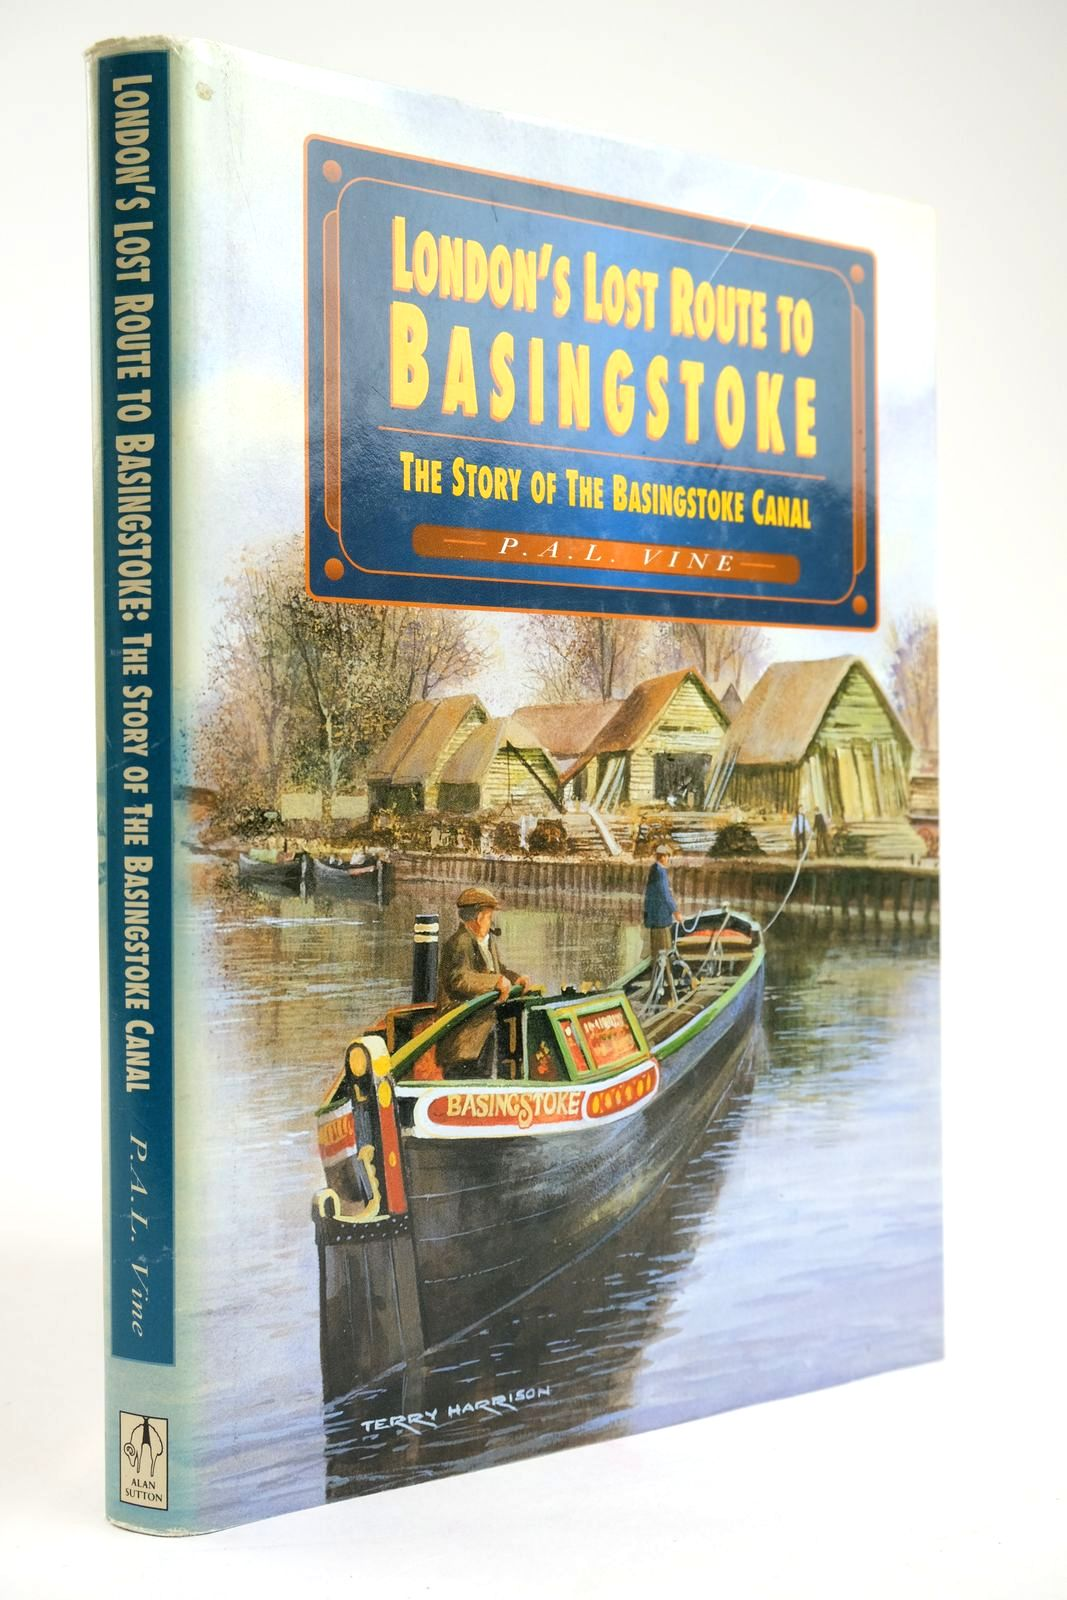 Photo of LONDON'S LOST ROUTE TO BASINGSTOKE: THE STORY OF THE BASINGSTOKE CANAL- Stock Number: 2133567